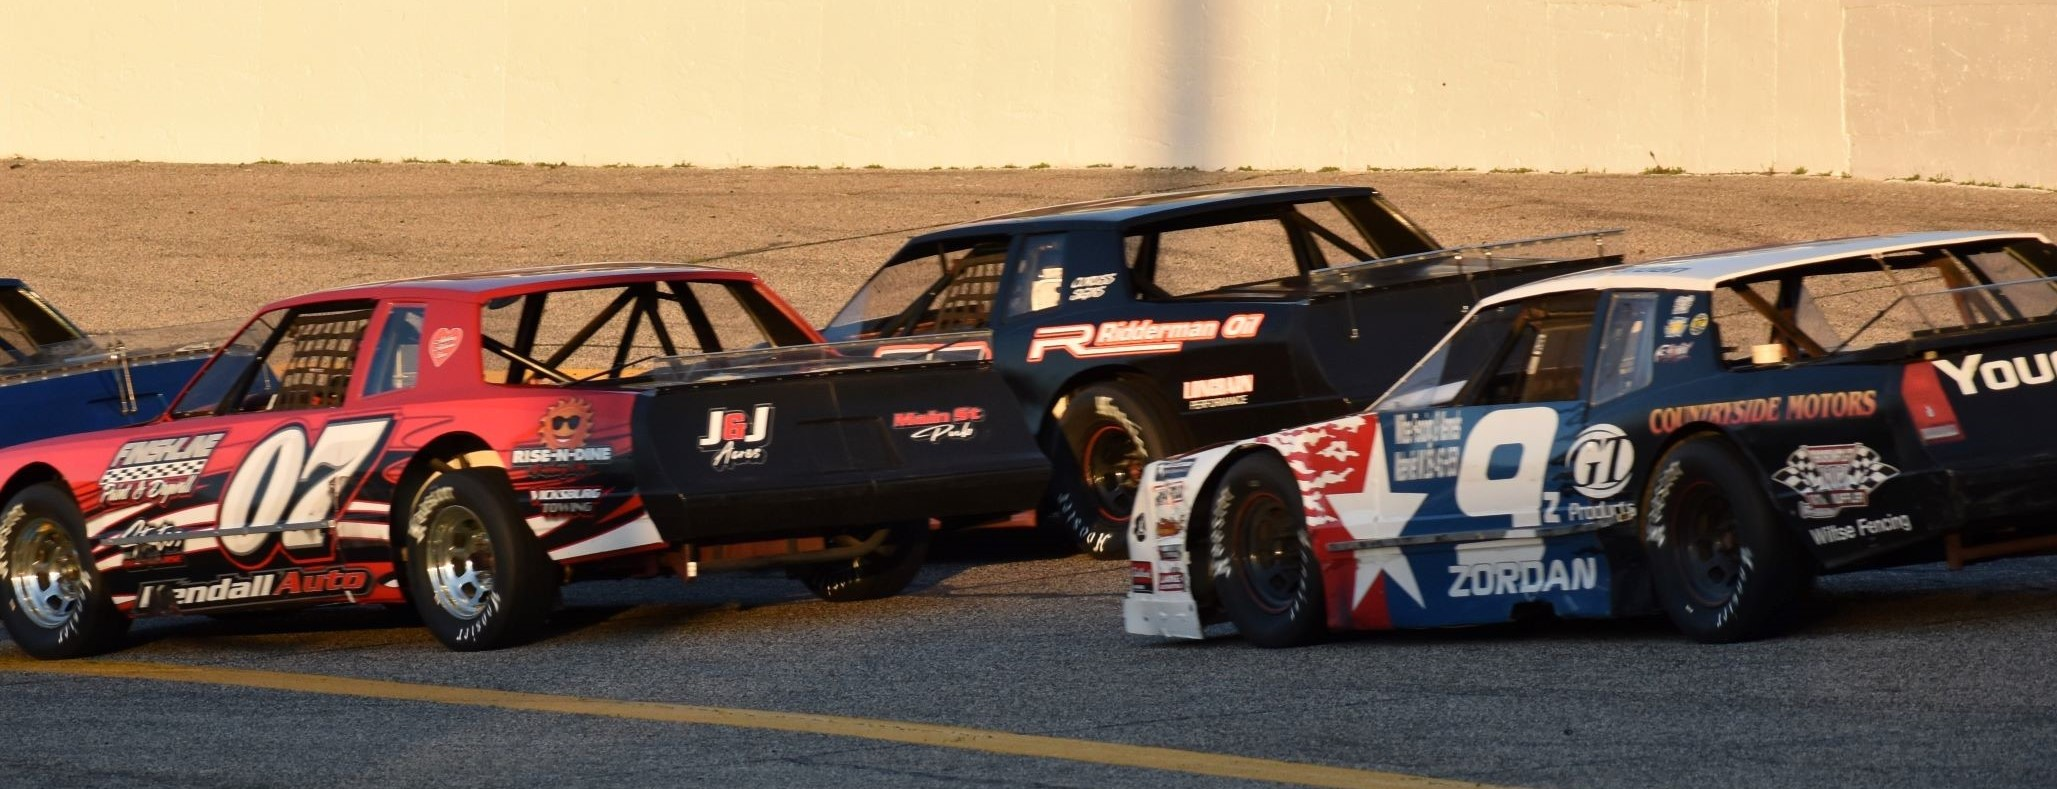 WEEKLY RACING - TLM, SS, FWD and the  ZOO Stock Race - MICHIANA VINTAGE RACERS NIGHT